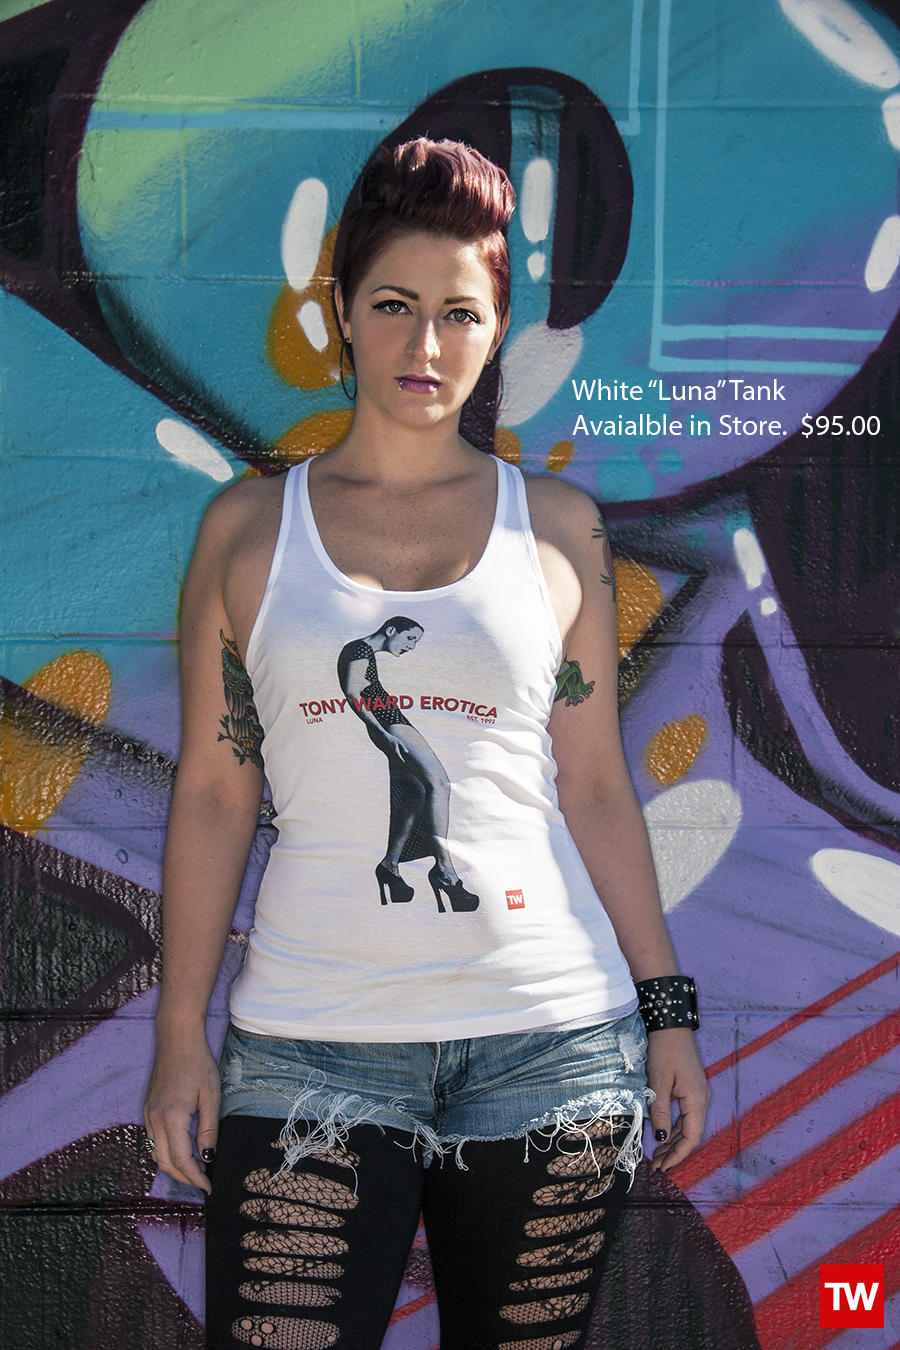 Tony_Ward_Studio_e_commerce_store_t-shirts_white_Luna_tank_sale_model_Mindy